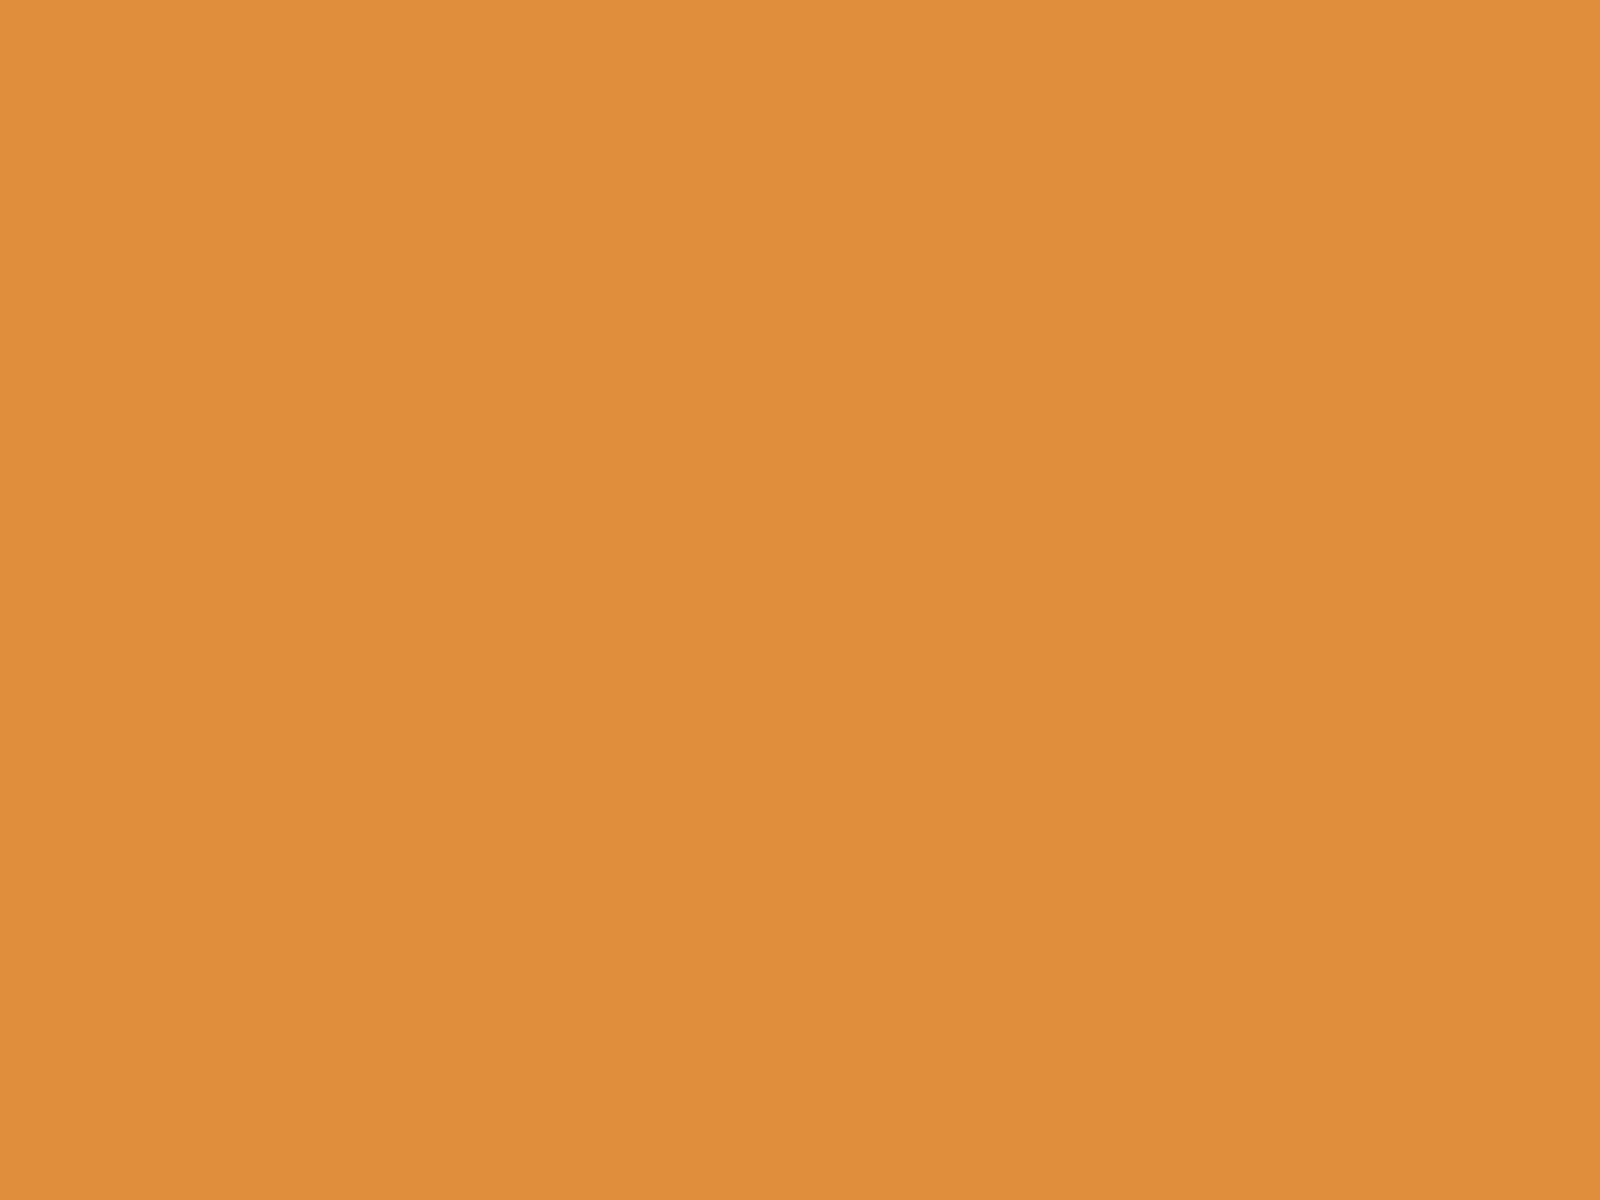 1600x1200 Tigers Eye Solid Color Background